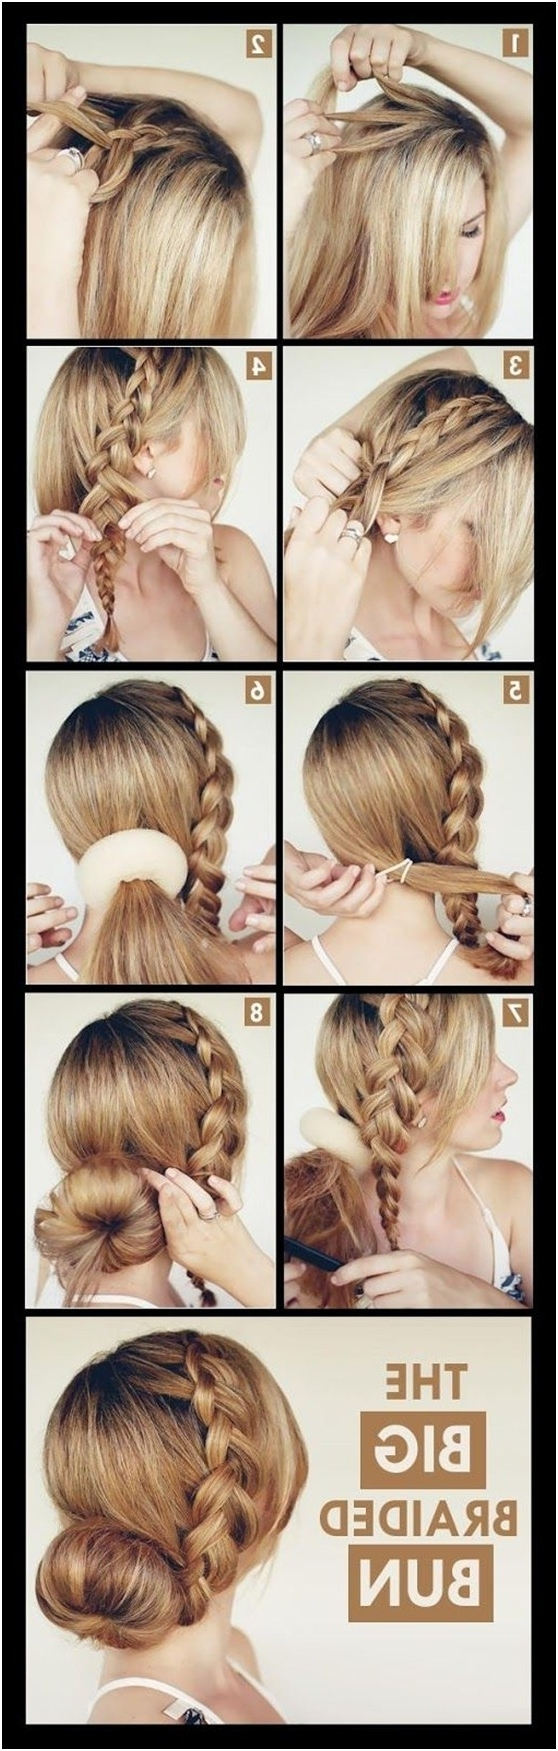 2018 Large Braided Updos For 15 Braided Updo Hairstyles Tutorials – Pretty Designs (View 2 of 15)